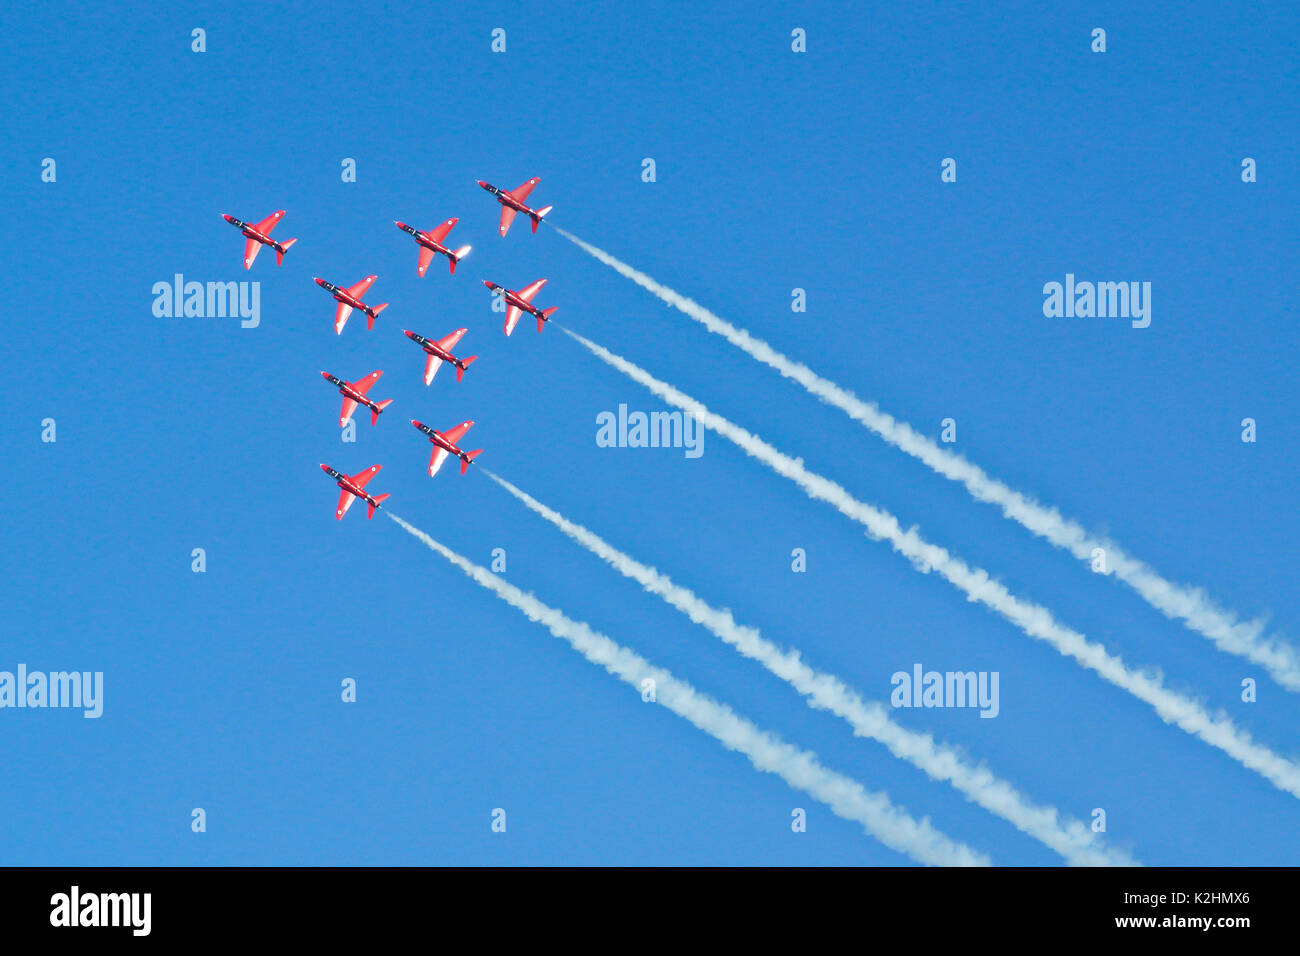 The Red Arrows in flight, Dawlish, UK - Stock Image